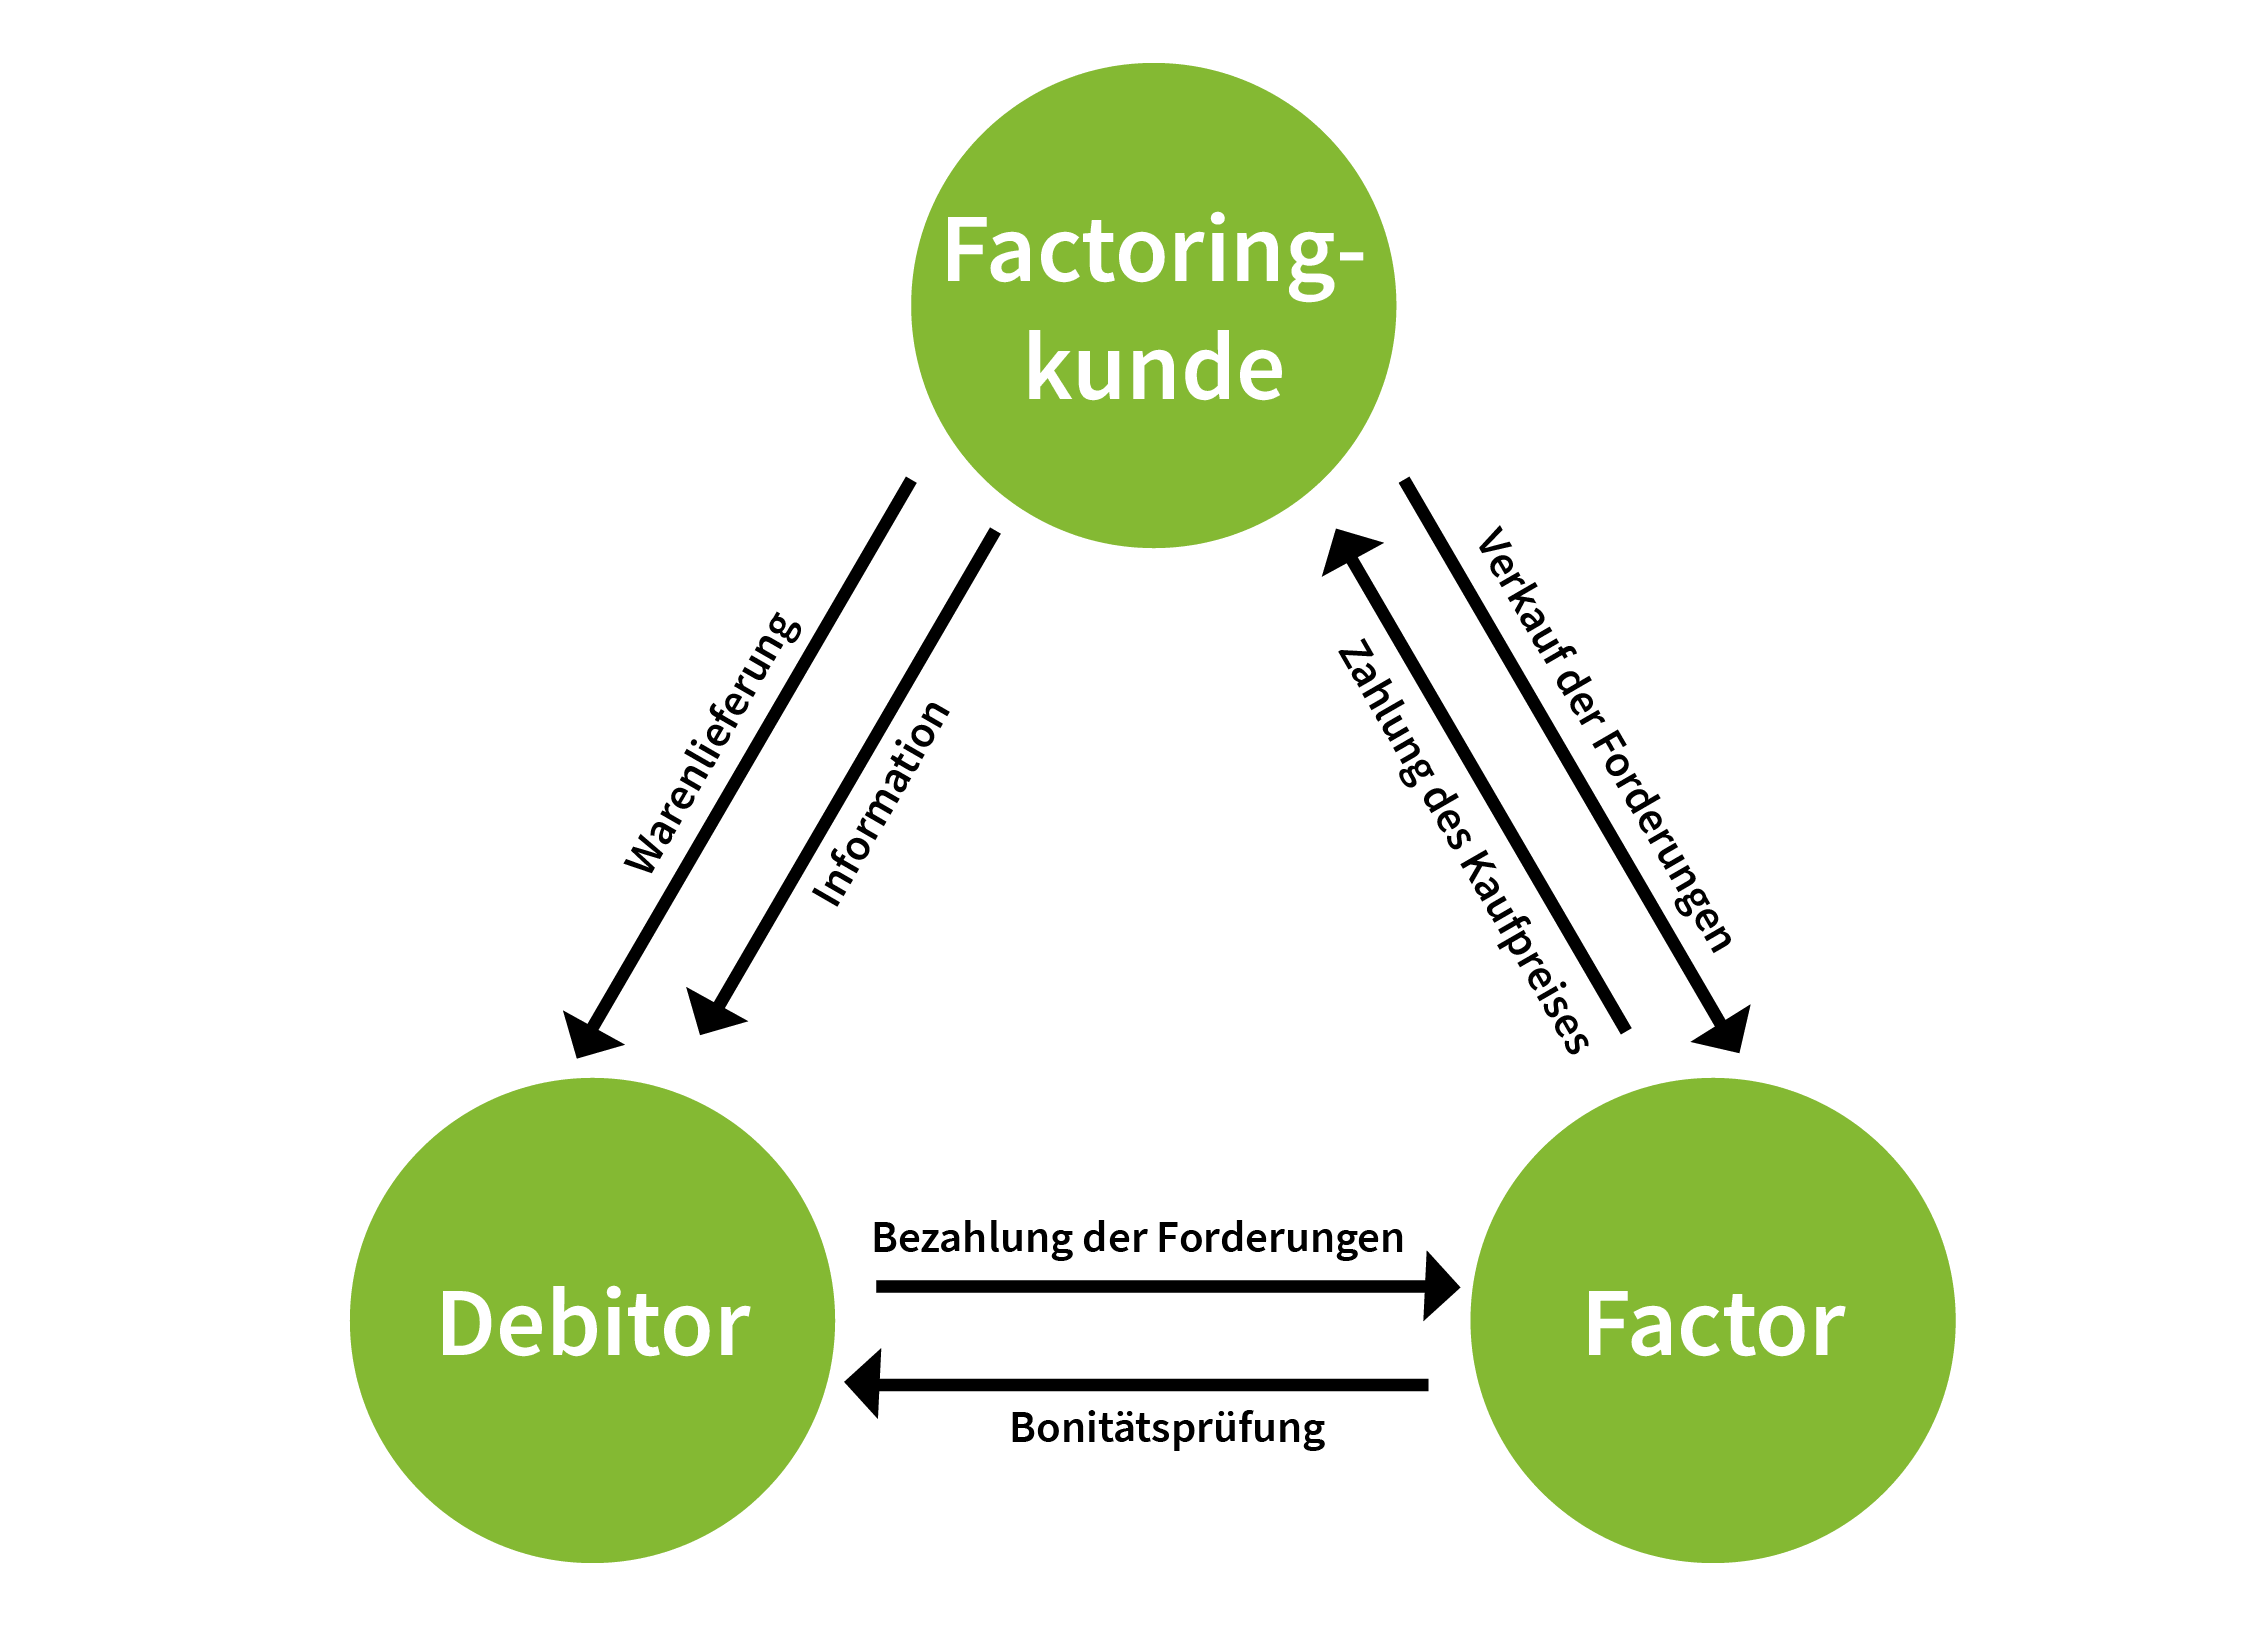 Funktionsweise des Factorings